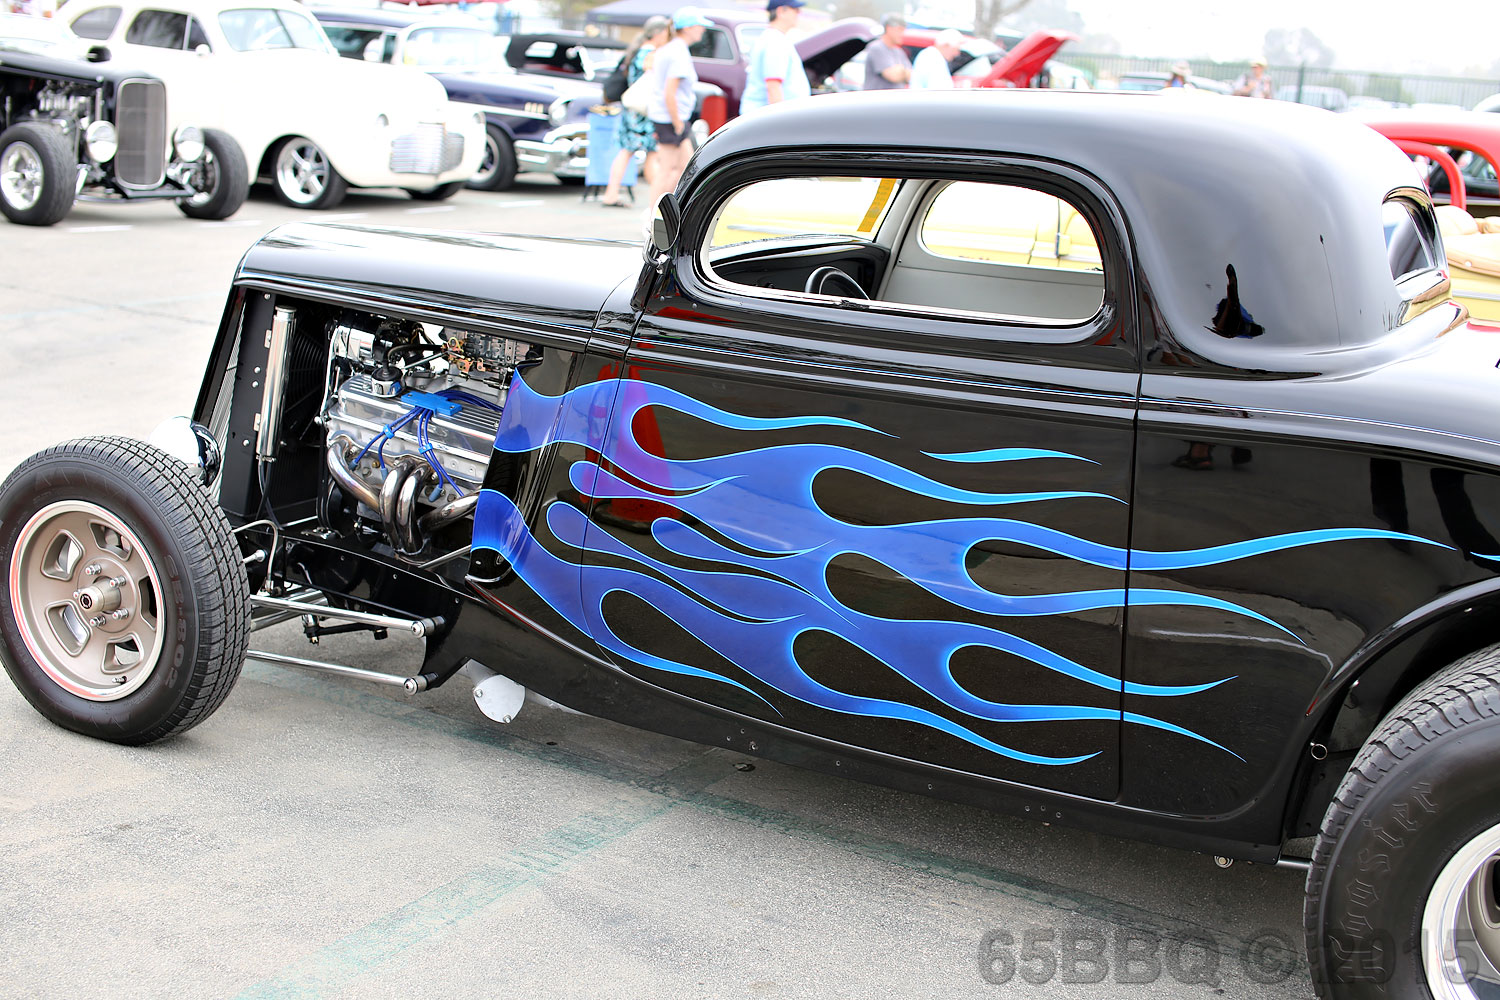 bluflmed-crusin4-15-65bbq.jpg